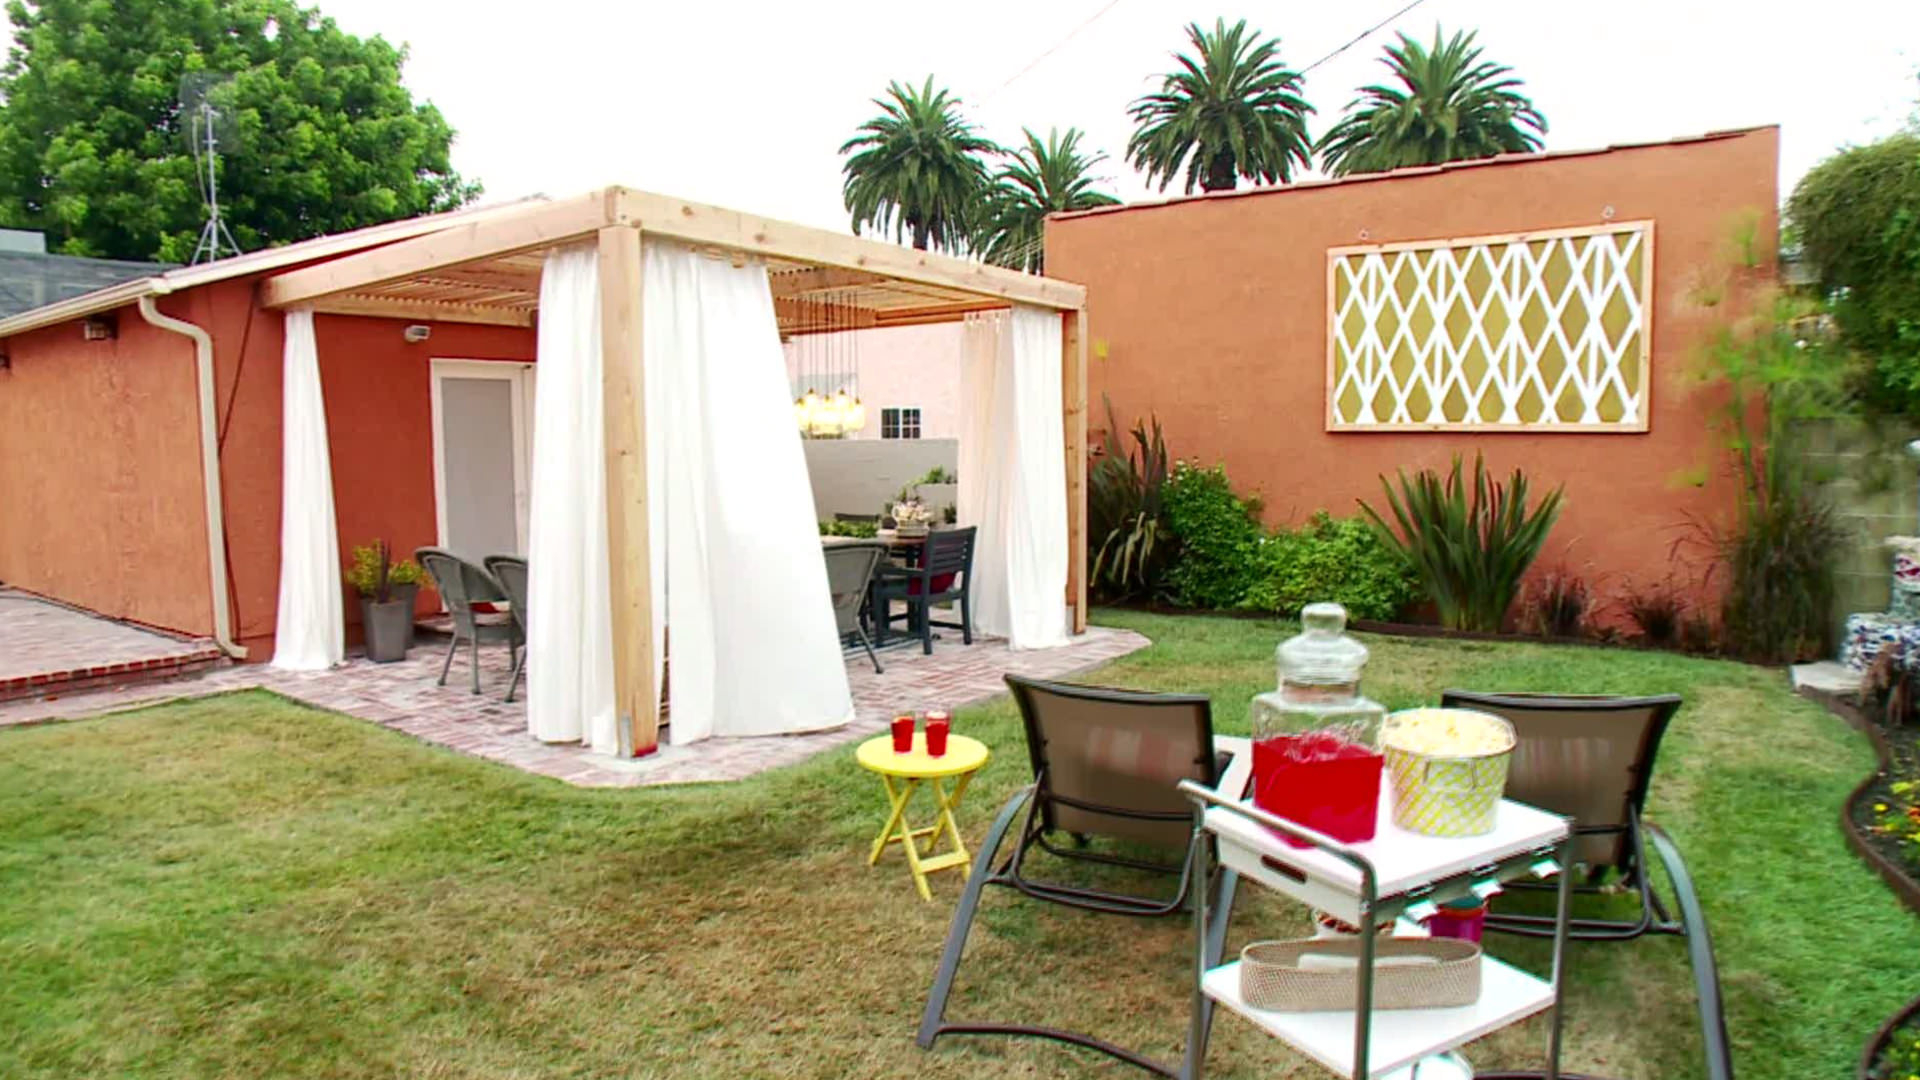 How To Simply And Uniquely Backyard Design Ideas On A Budget throughout 10 Awesome Concepts of How to Improve Backyard Retreat Ideas